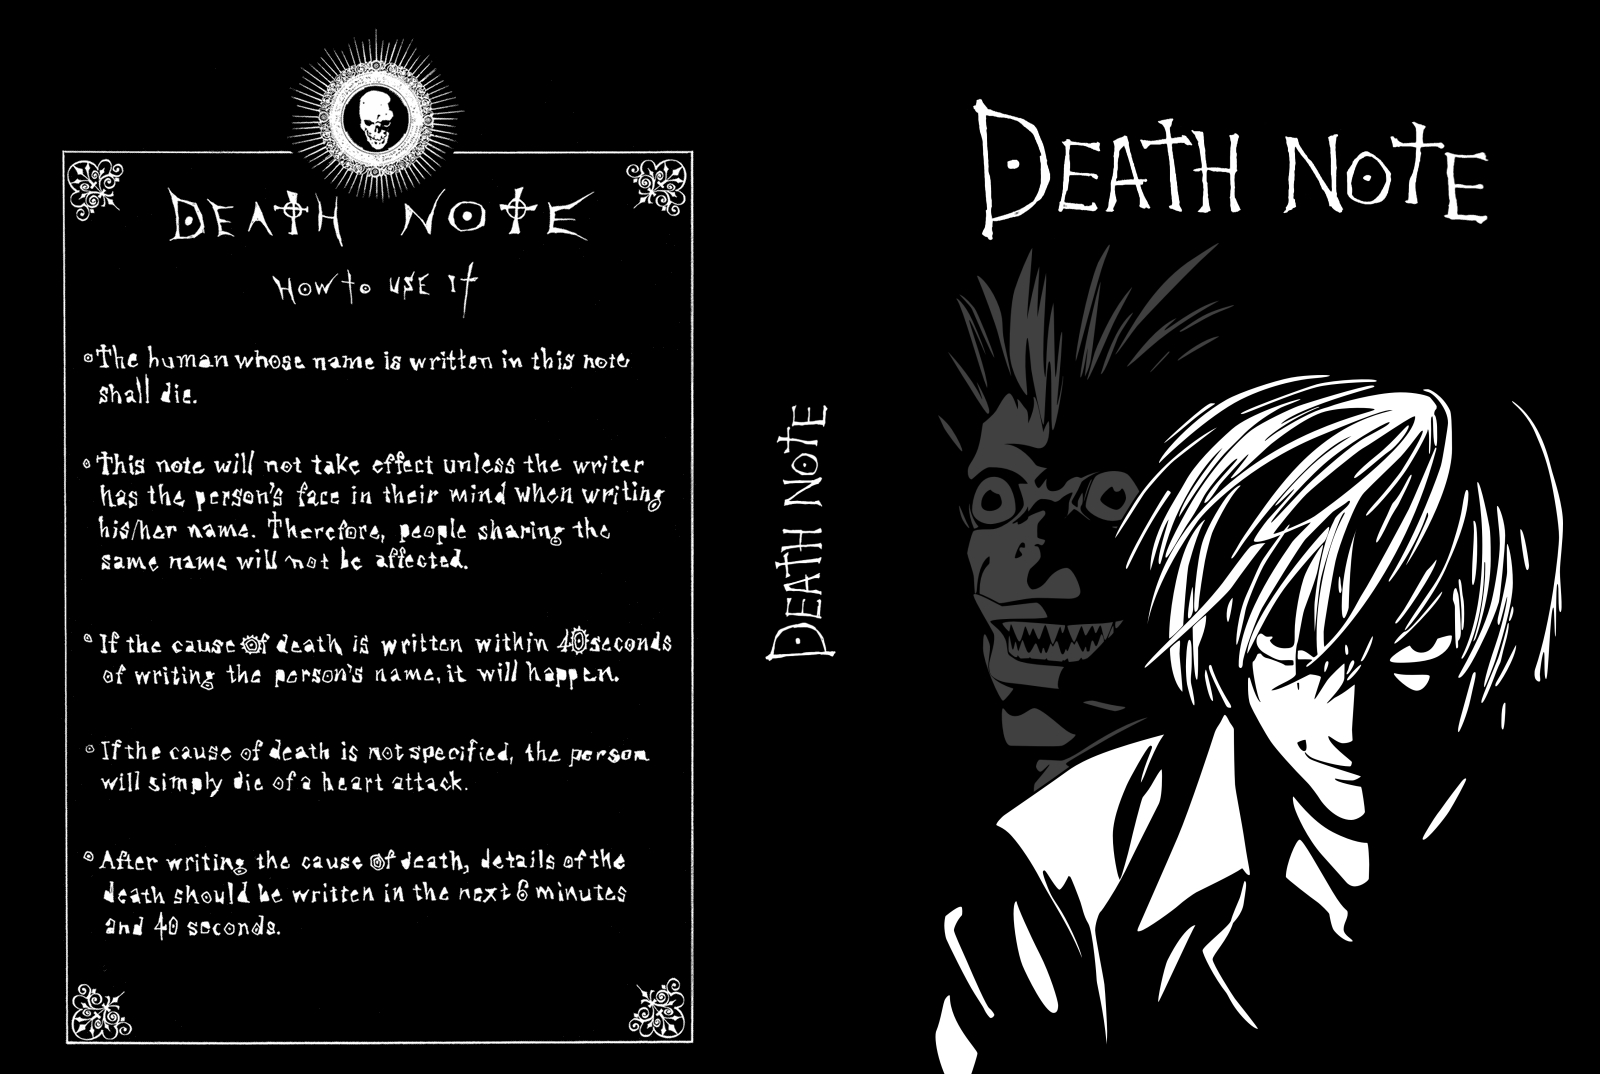 DVD COVERS AND LABELS: Death Note